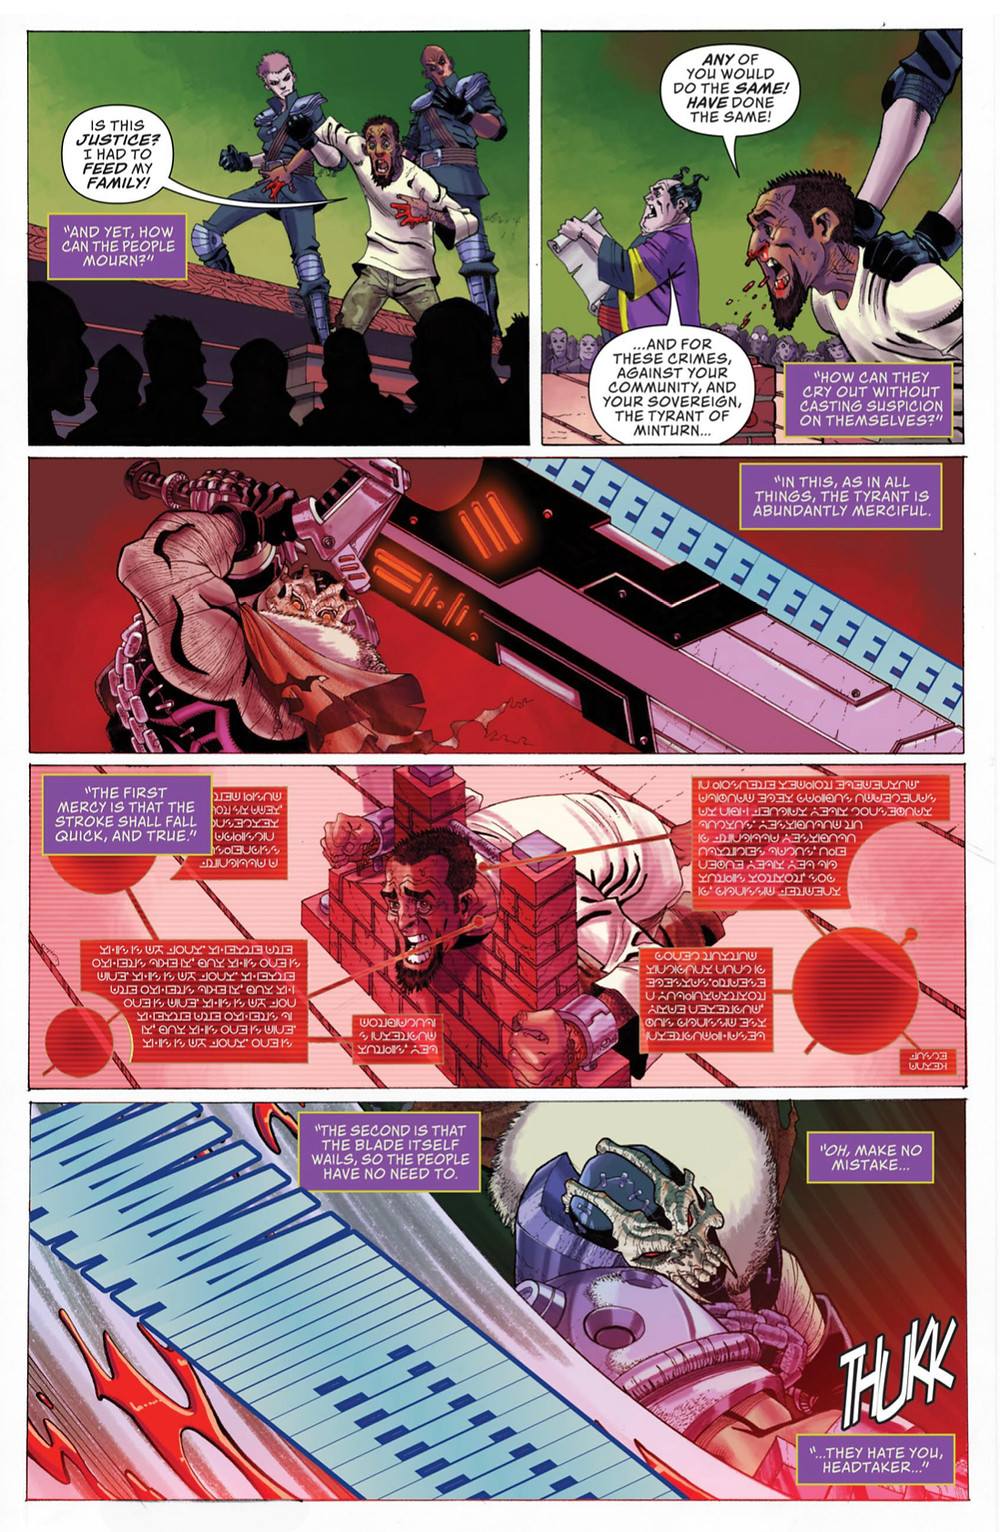 Wailing Blade, issue #1, page 13, ComixTribe, Douek/Mulvey